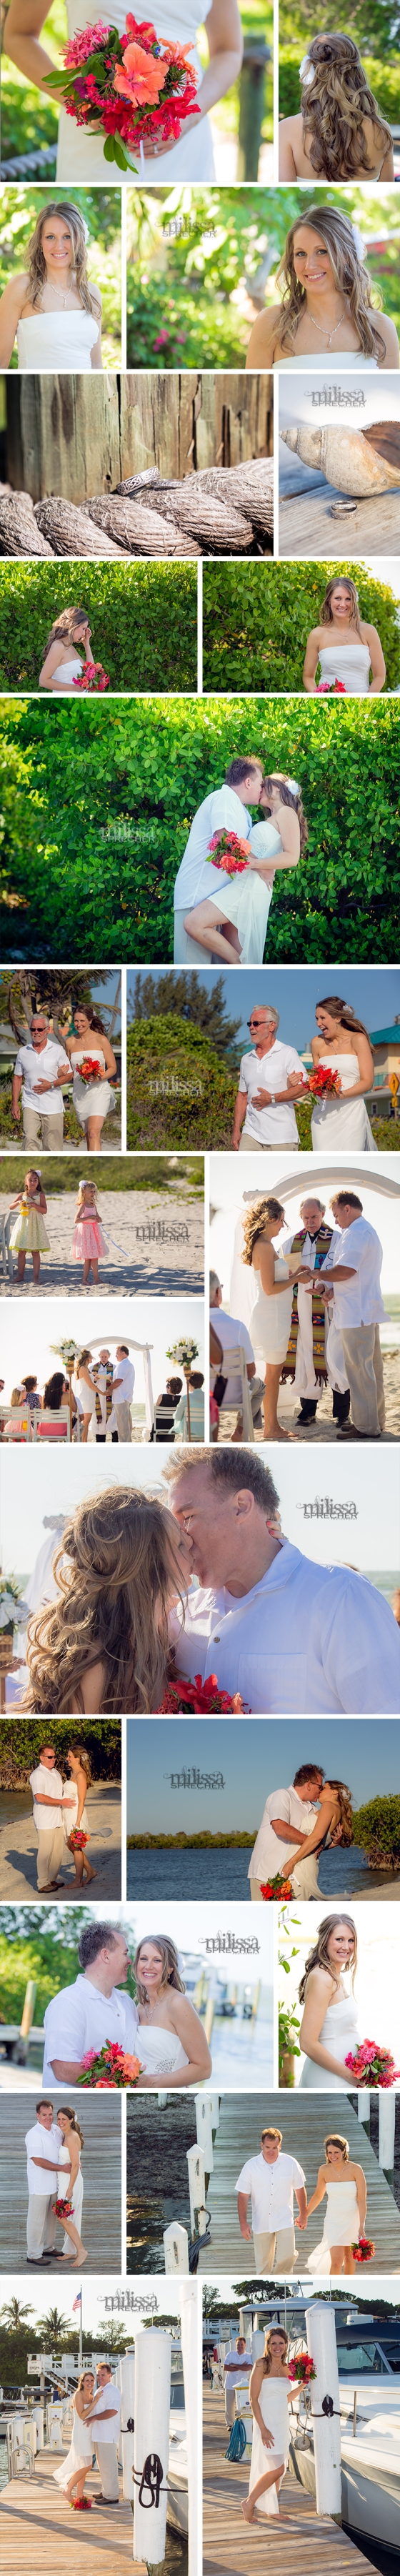 WeddingTweenWatersInn